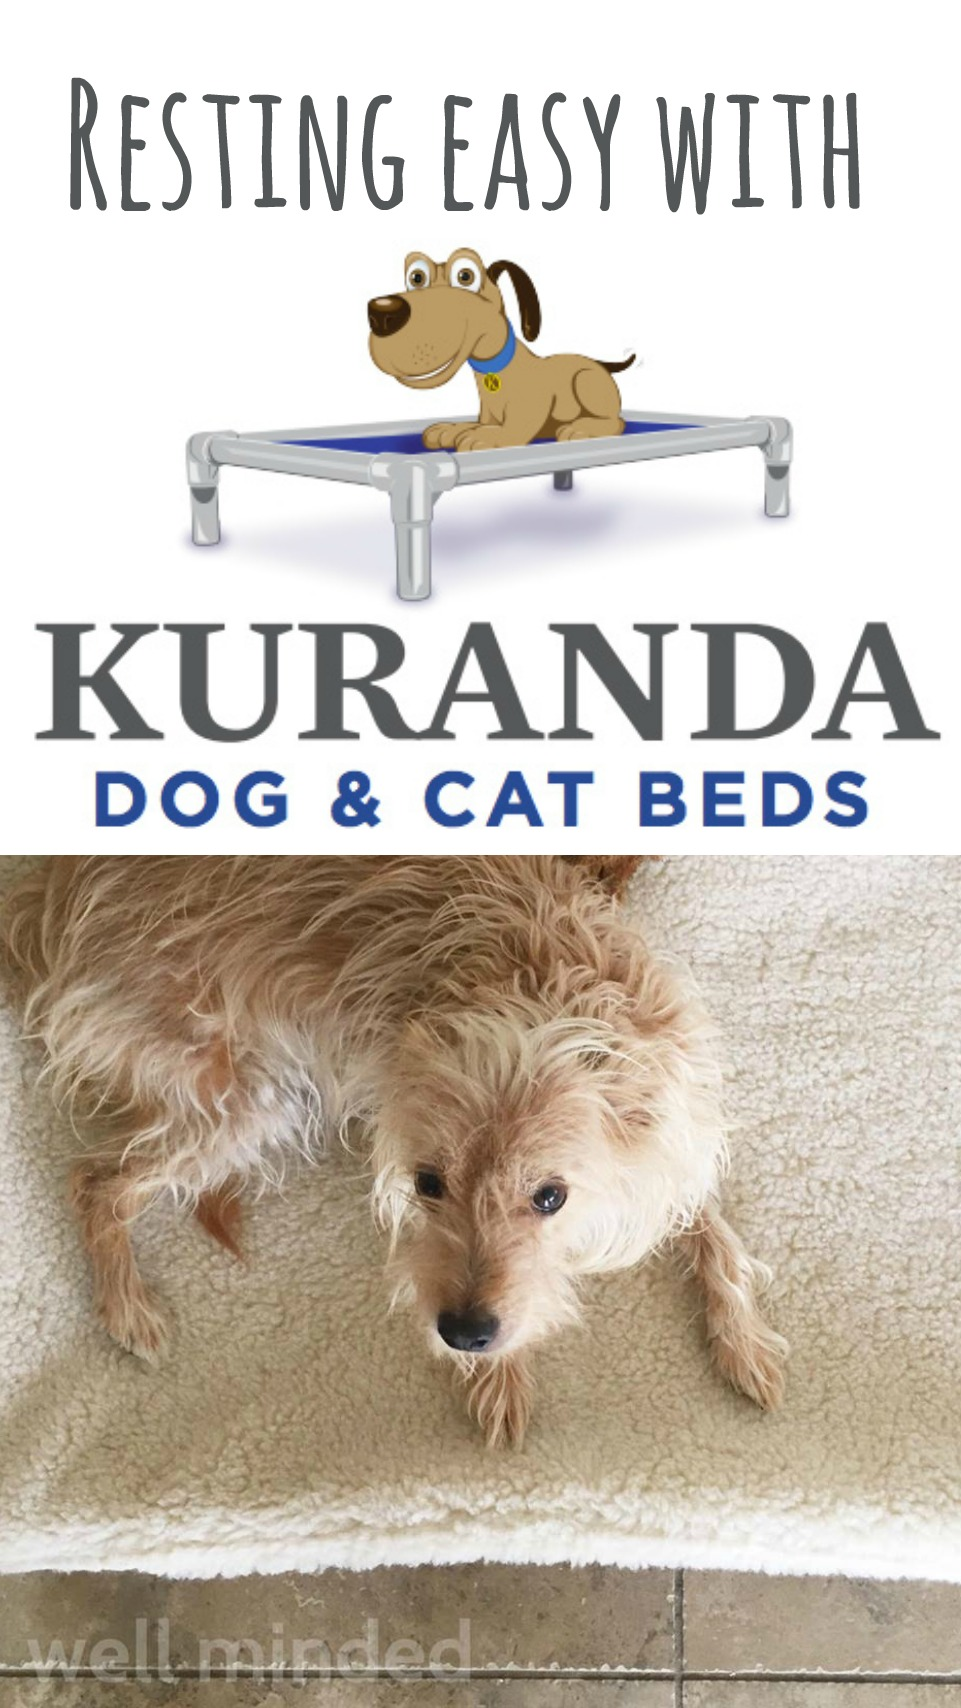 Resting_Easy_Kuranda_Dog_and_Cat_Beds